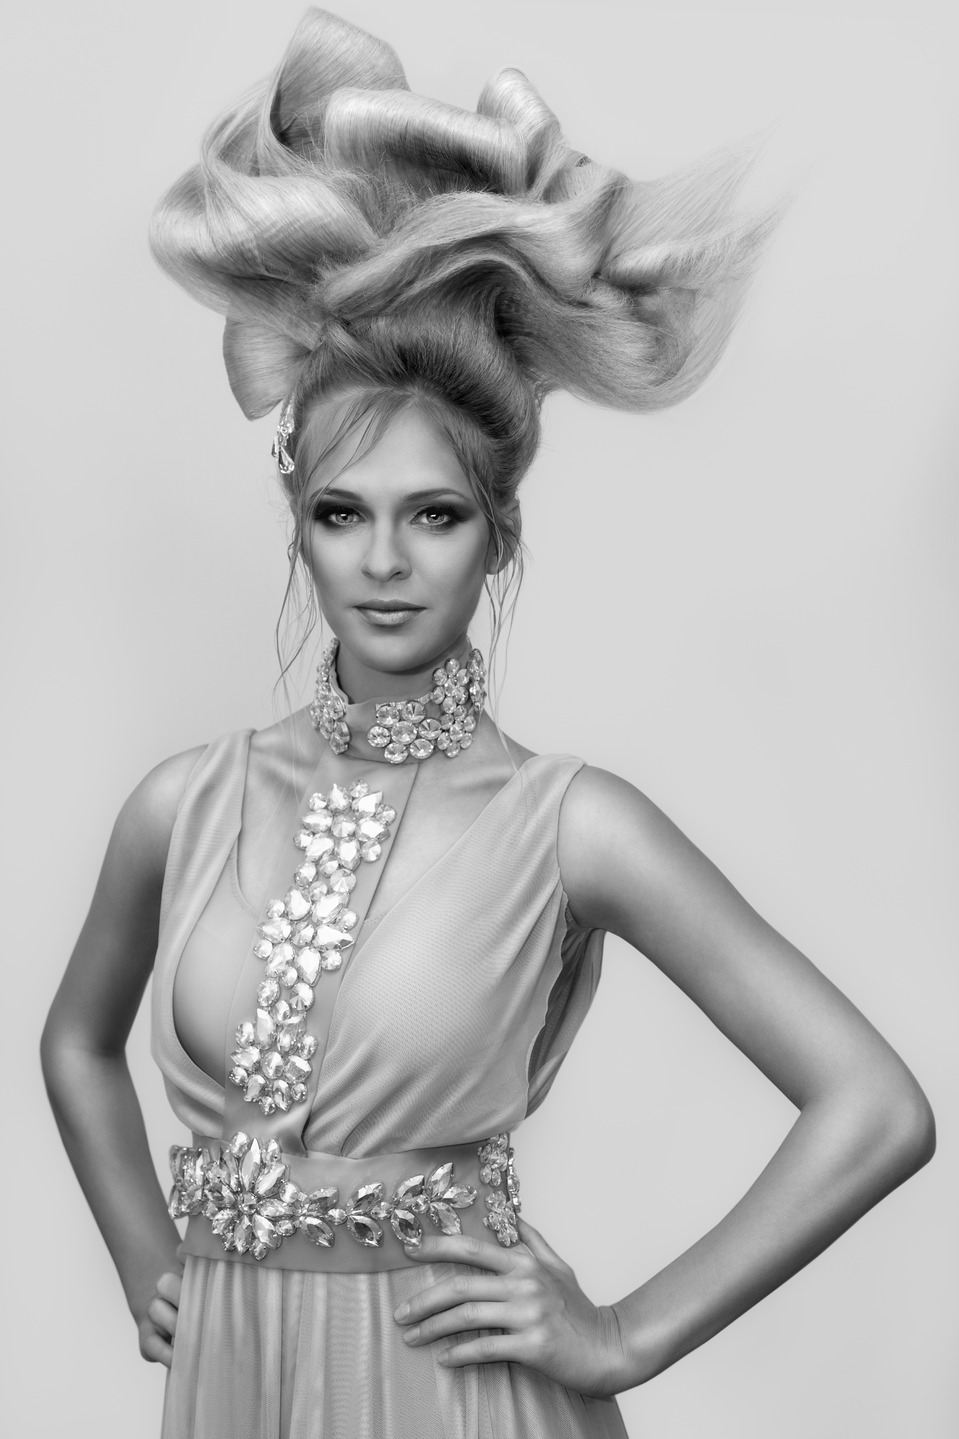 Huge hairdo | black & white, hairdo, strange woman, photoshoot, beautiful dress